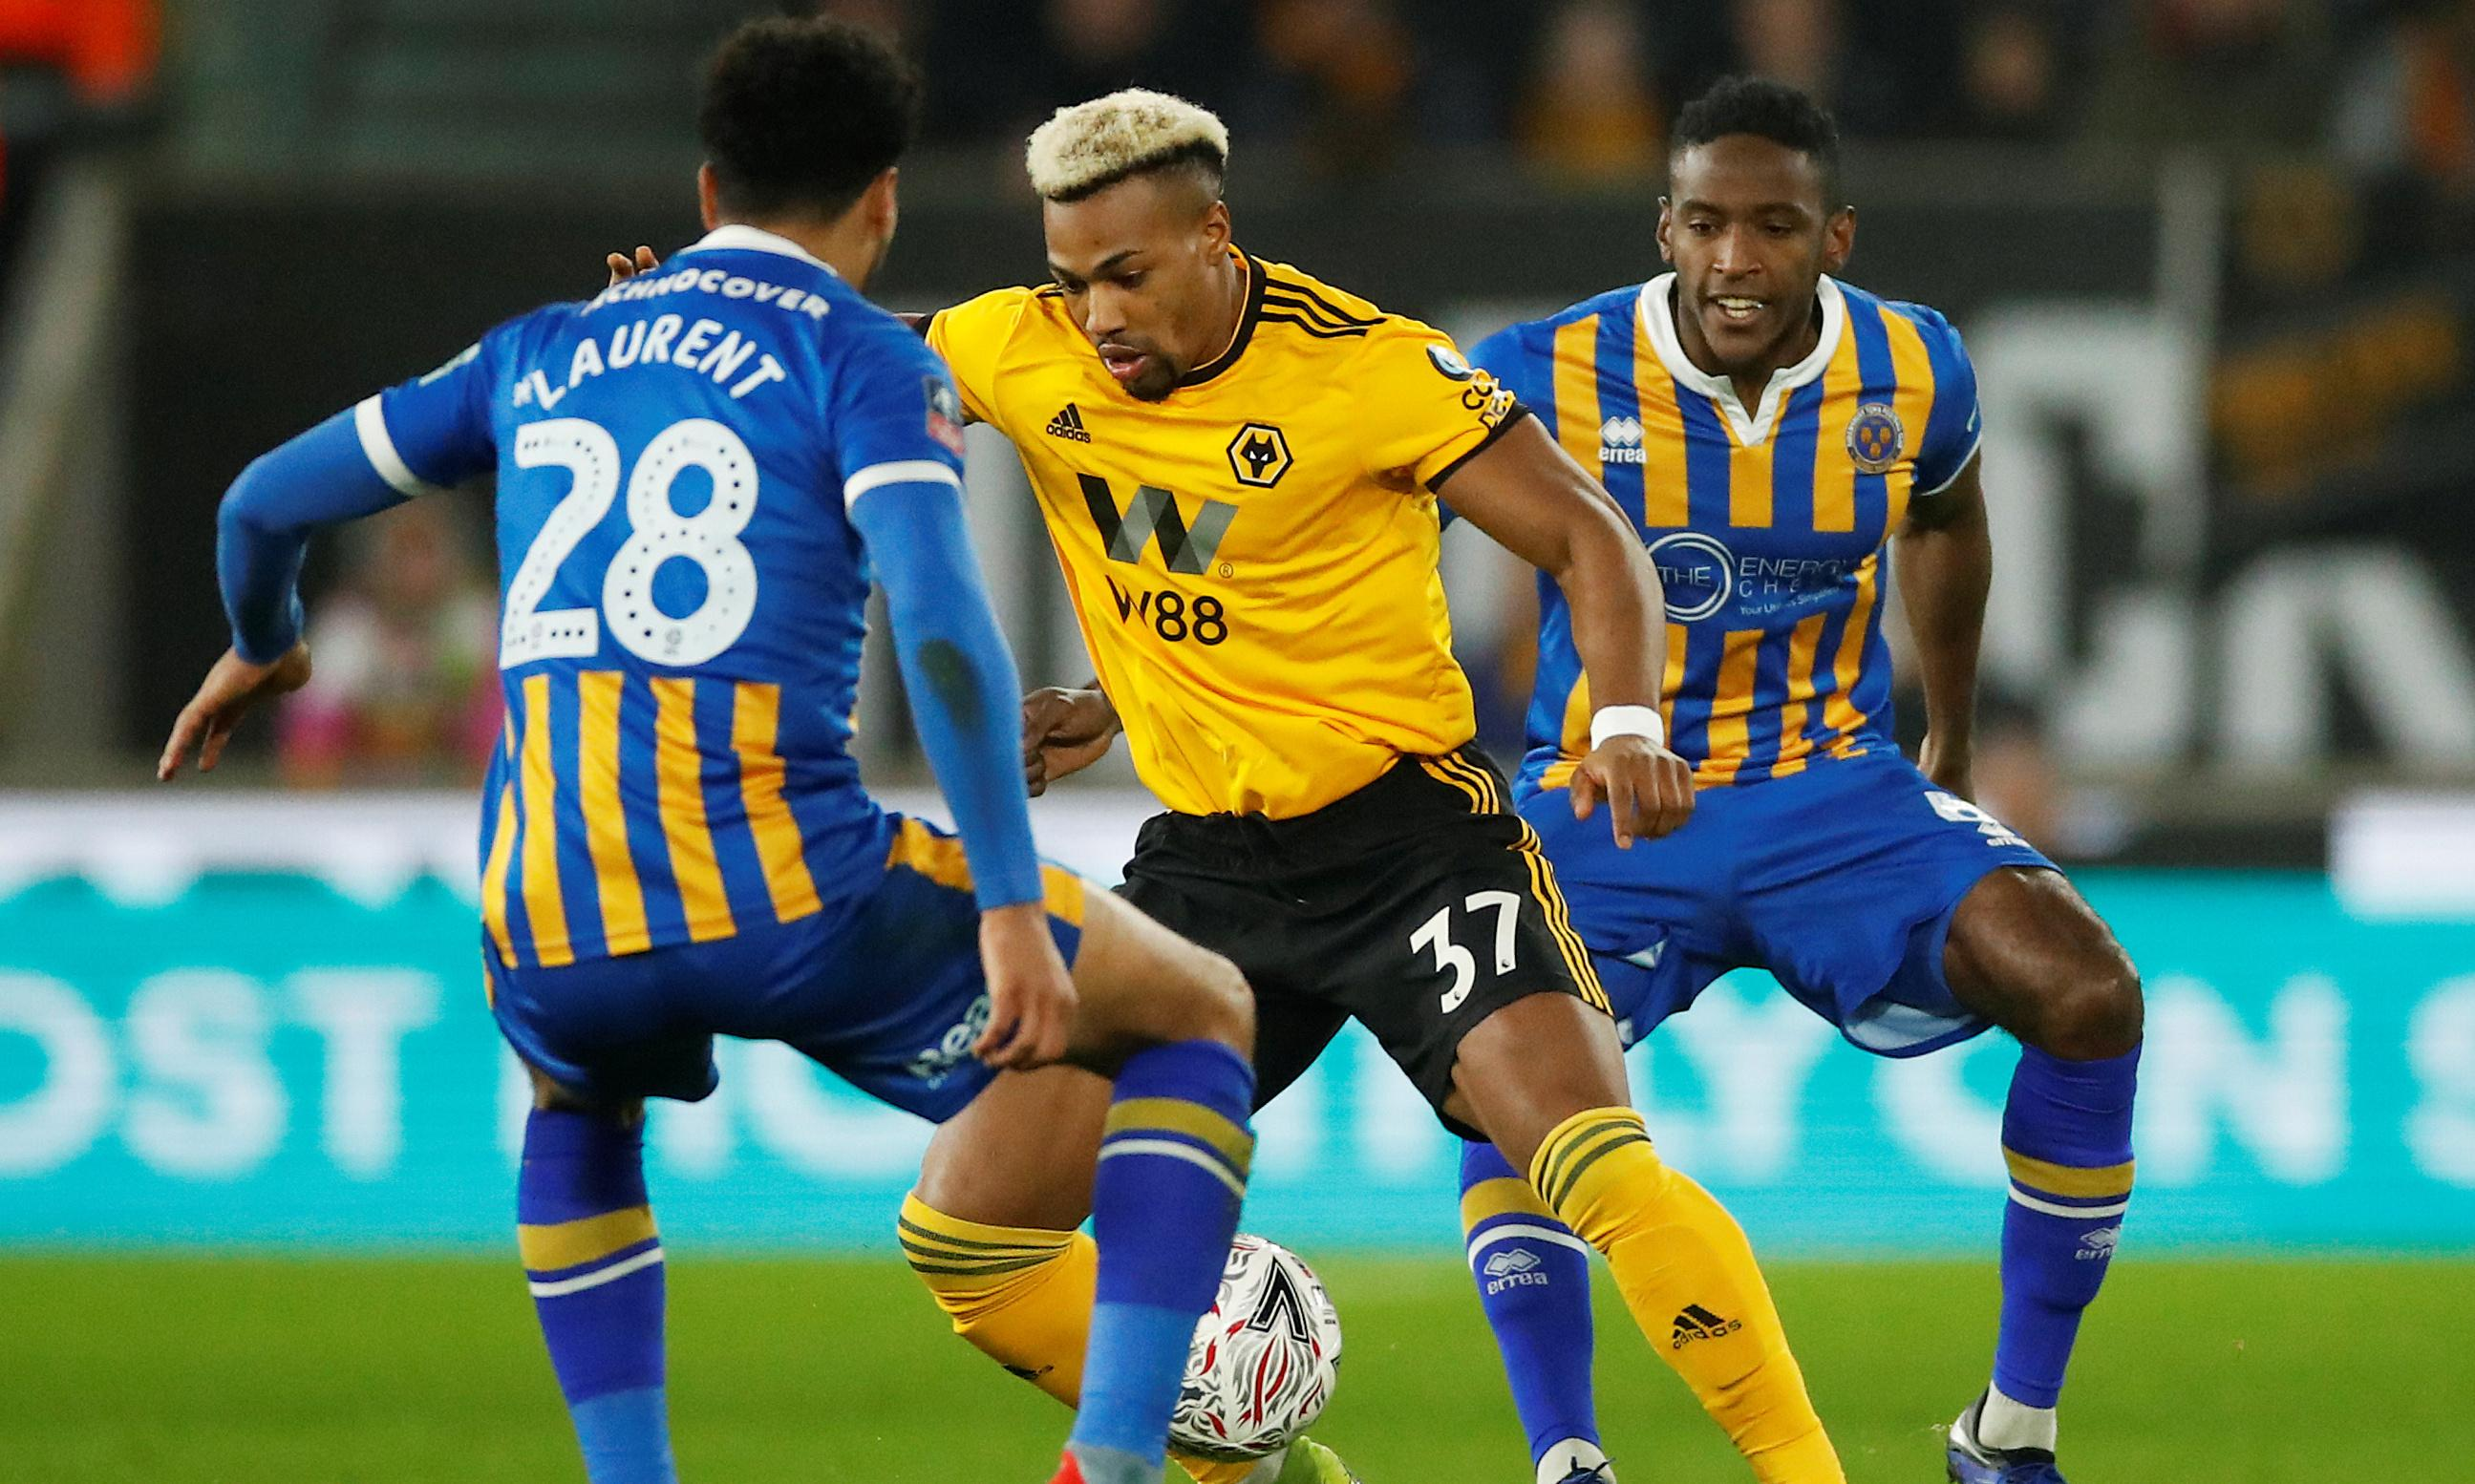 Adama Traoré: 'I am self-critical, I need to do better in the final third'